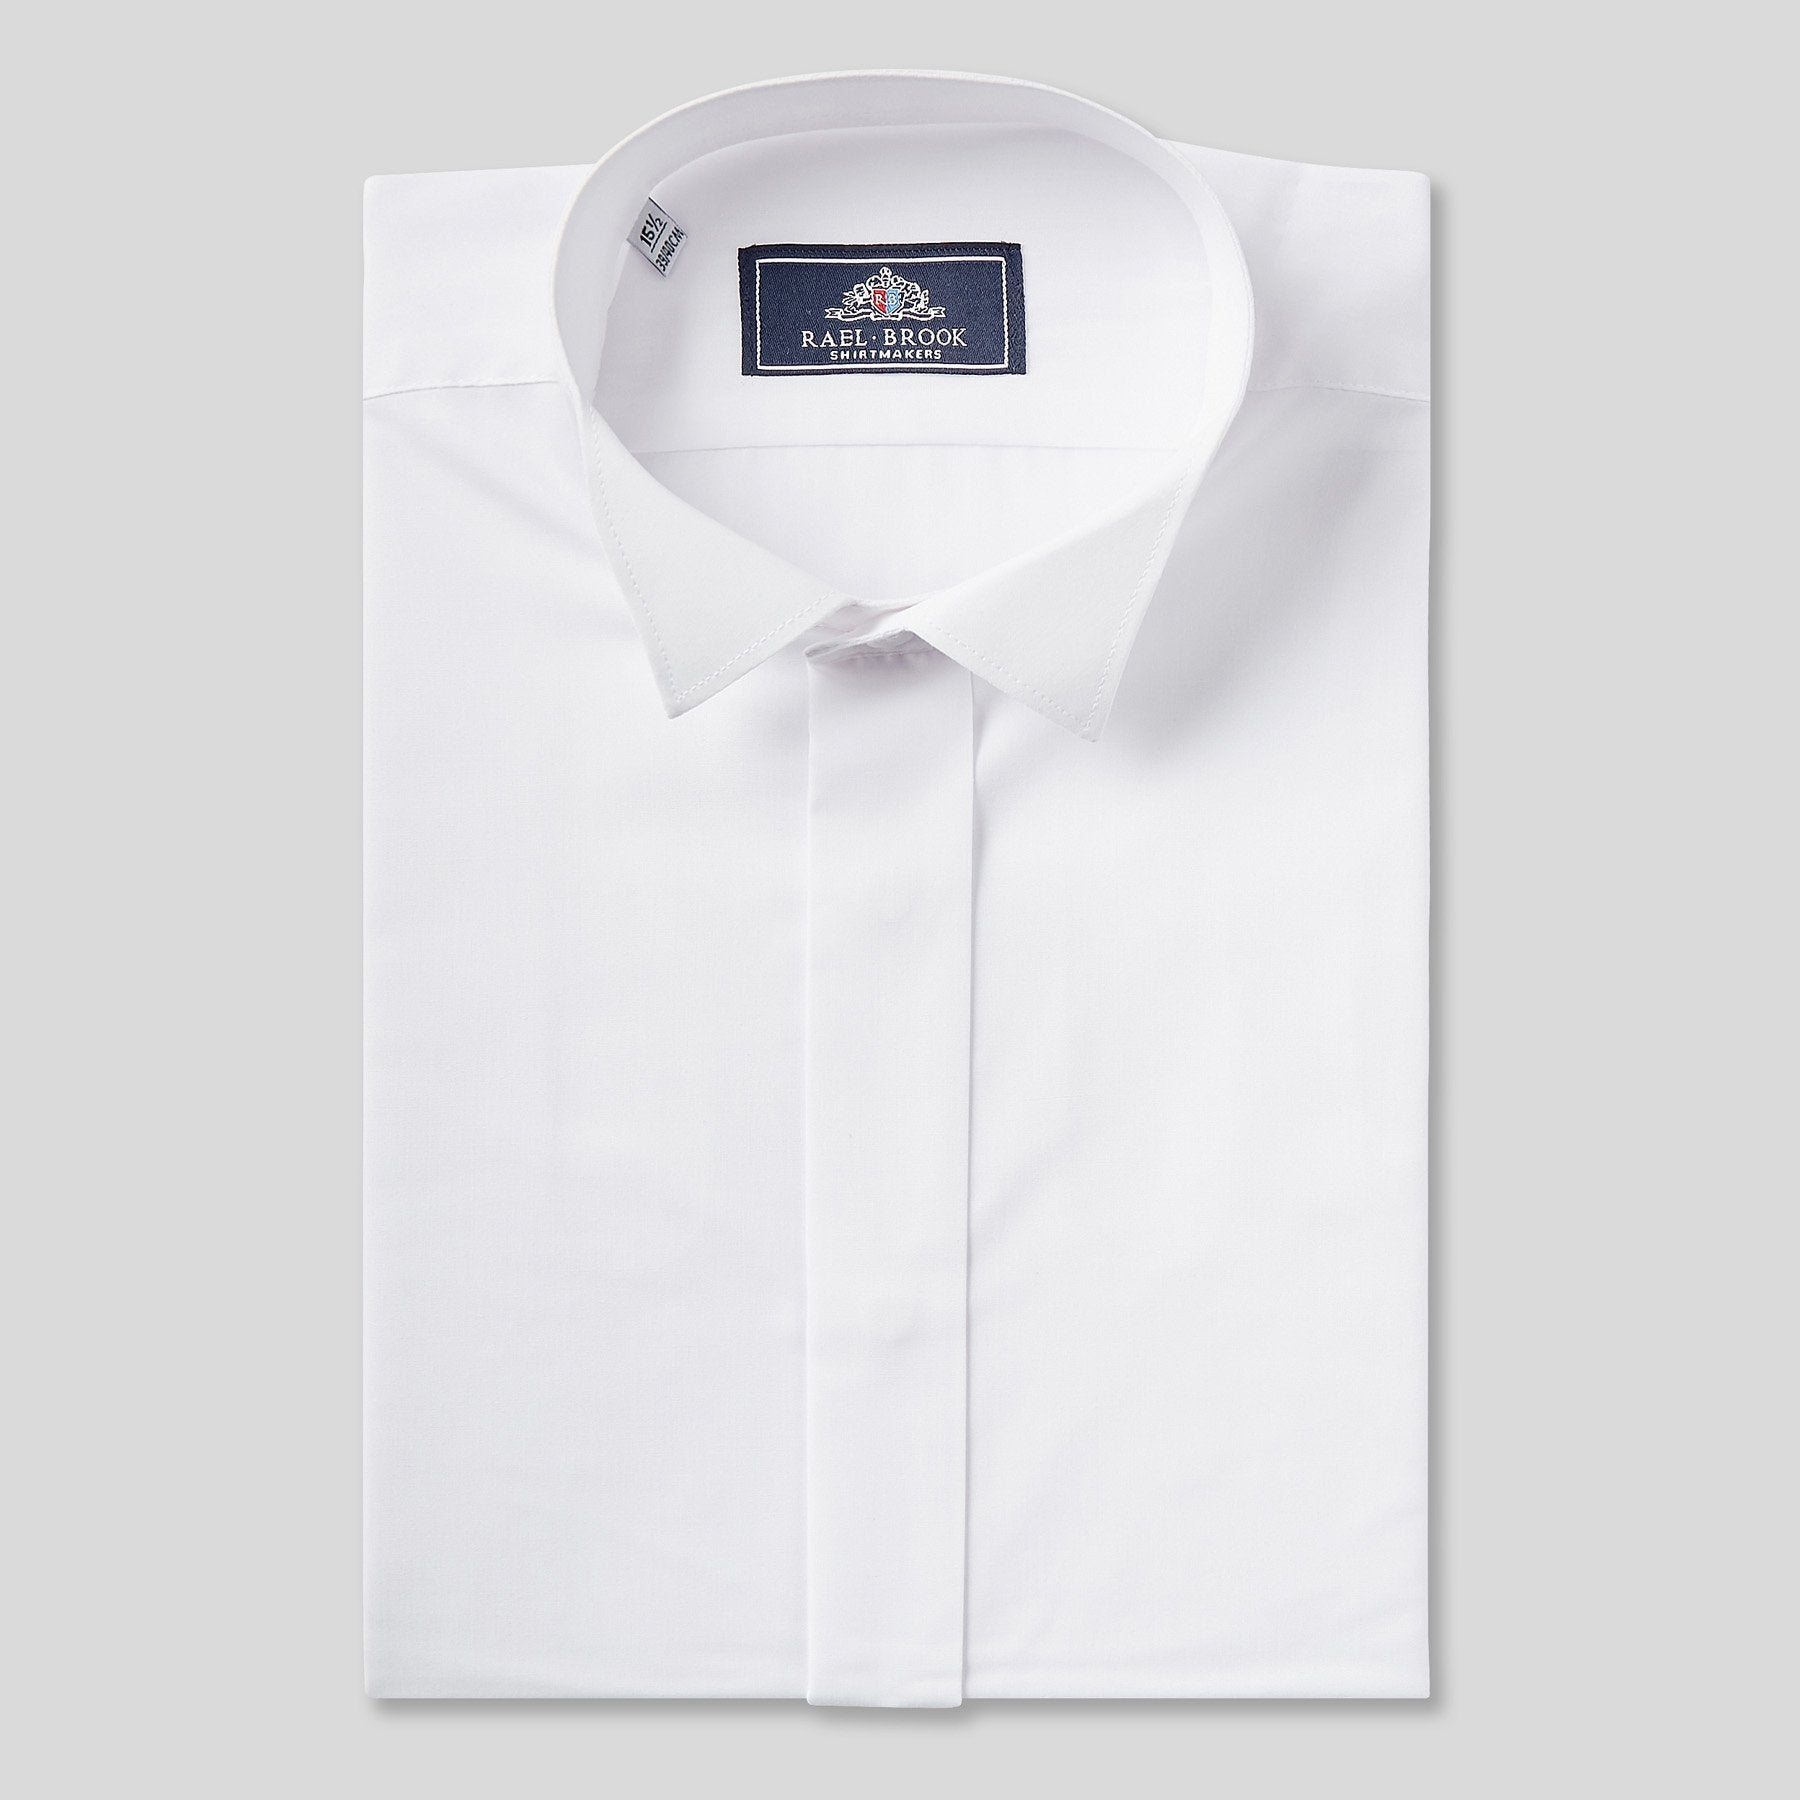 Rael Brook Tailored Fit White Wing Collar Dress Shirt